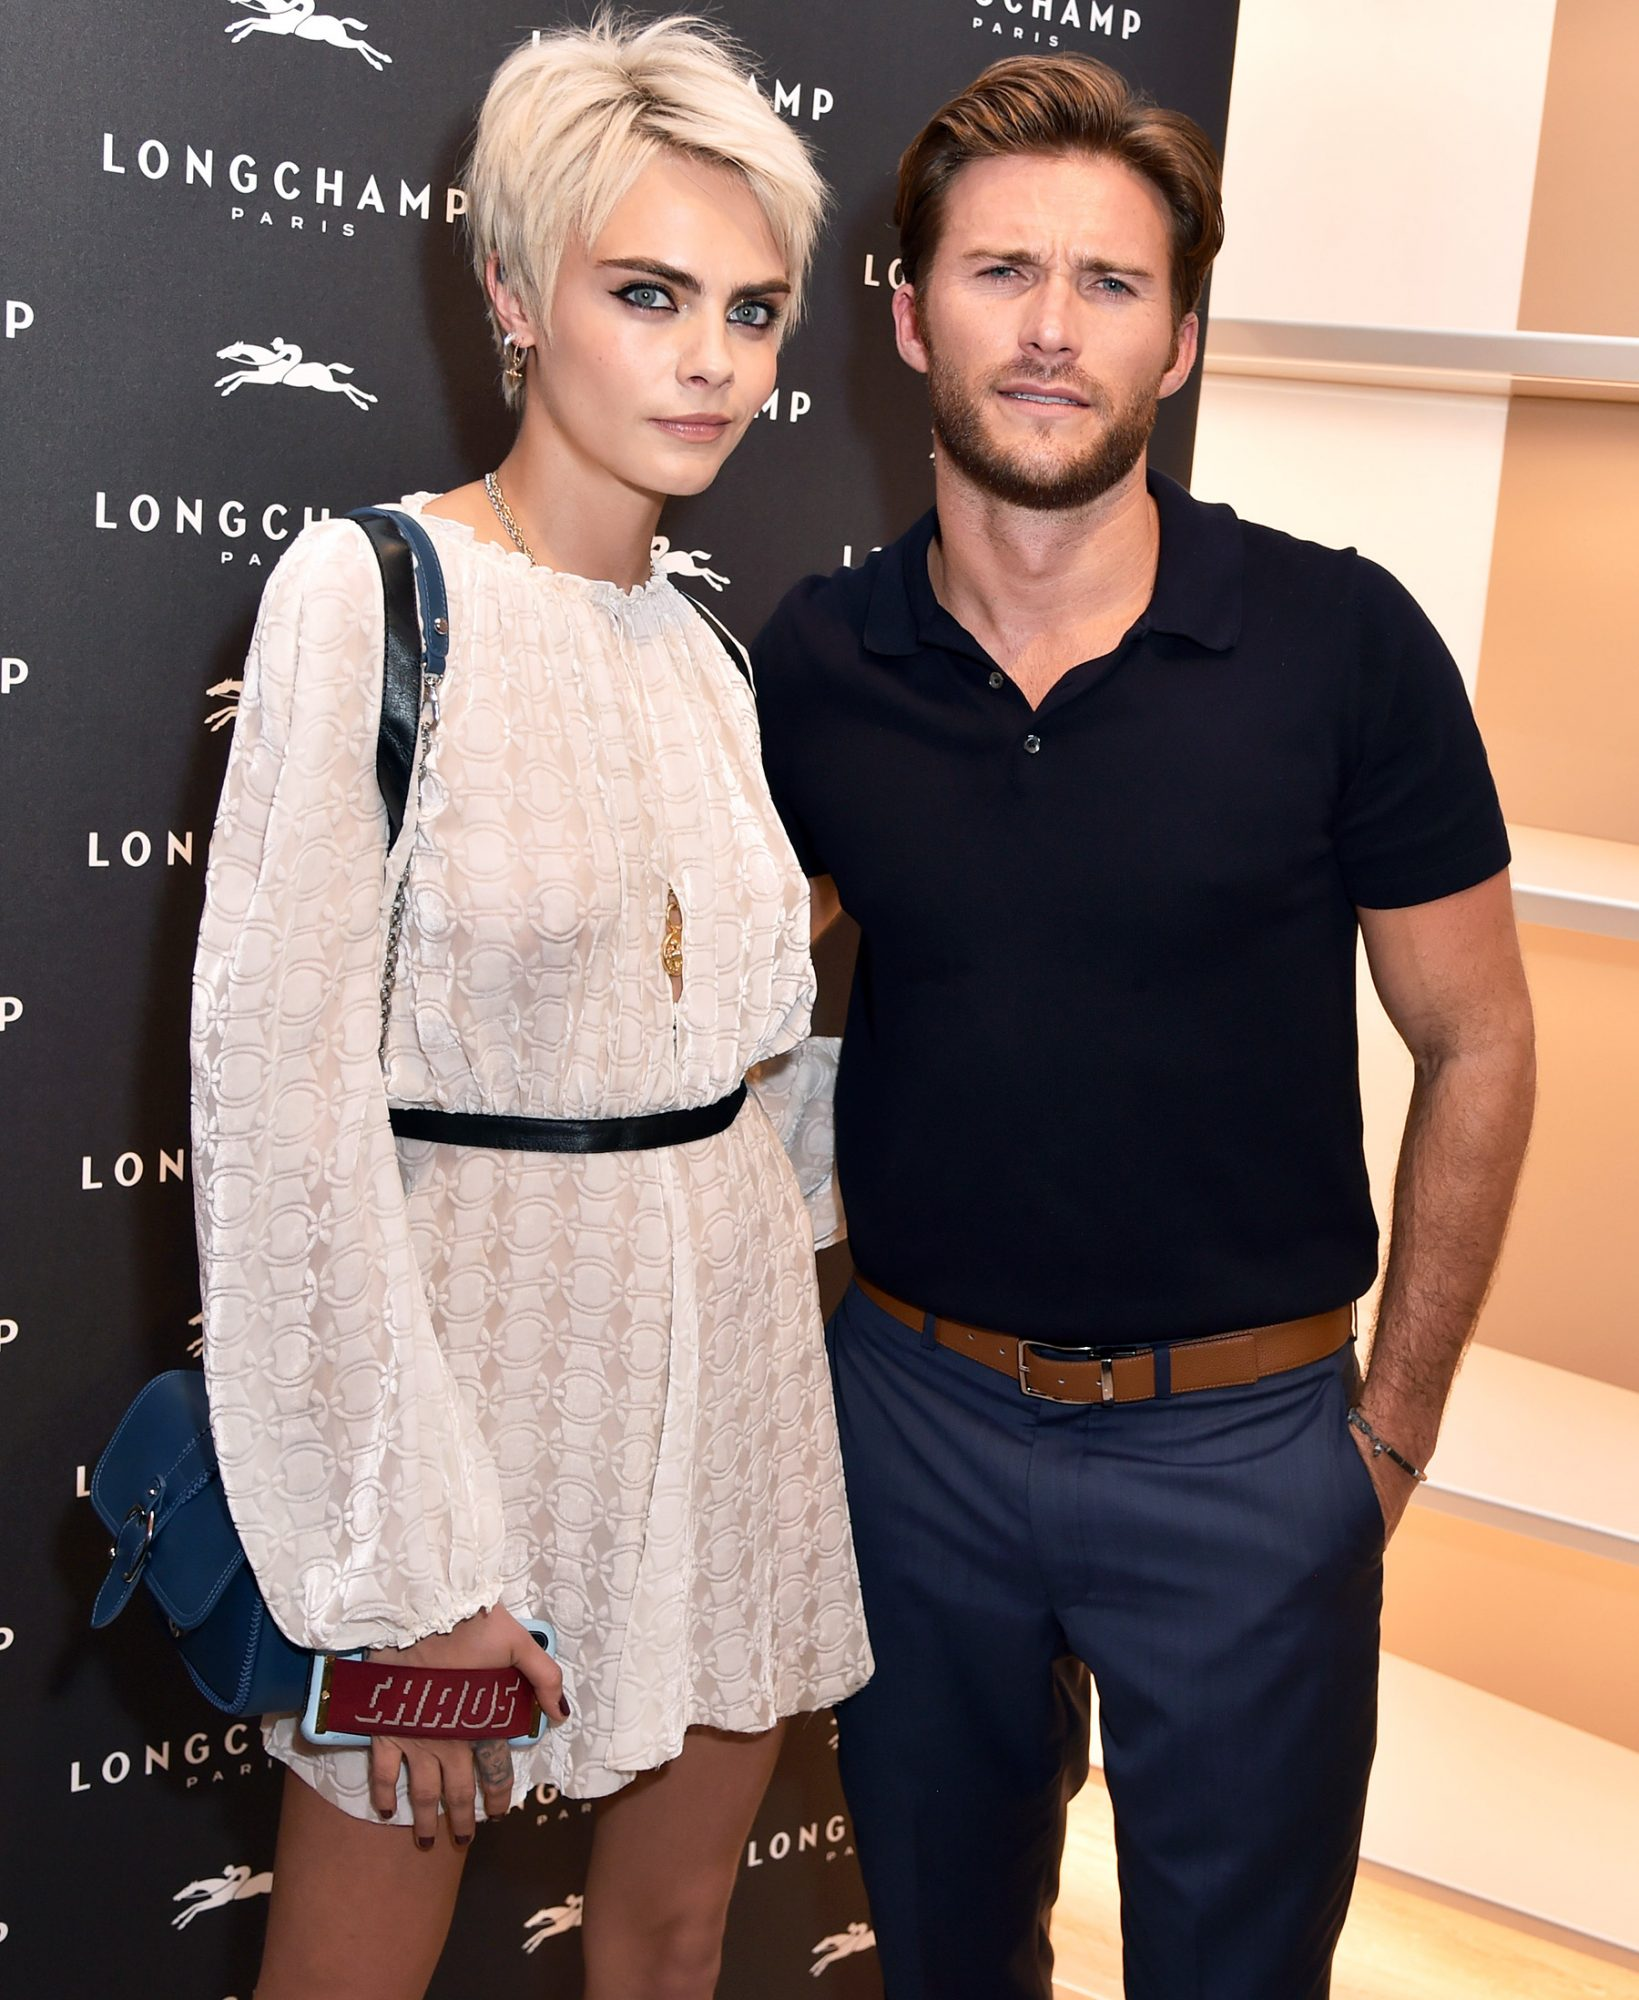 Longchamp Fifth Avenue store opening, Inside, New York, USA - 03 May 2018